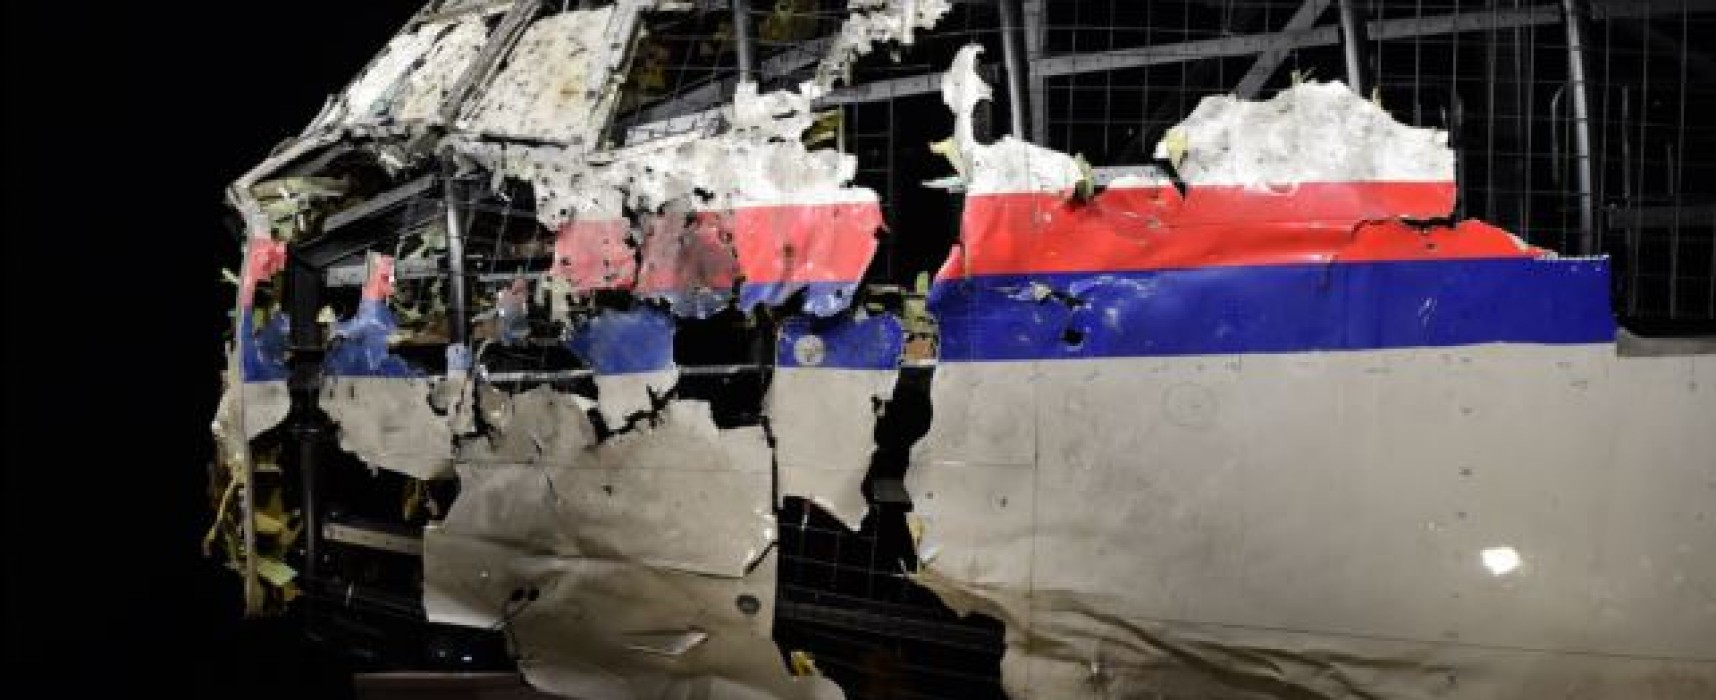 Dutch Report: MH17 Downed By Buk Surface-To-Air Missile